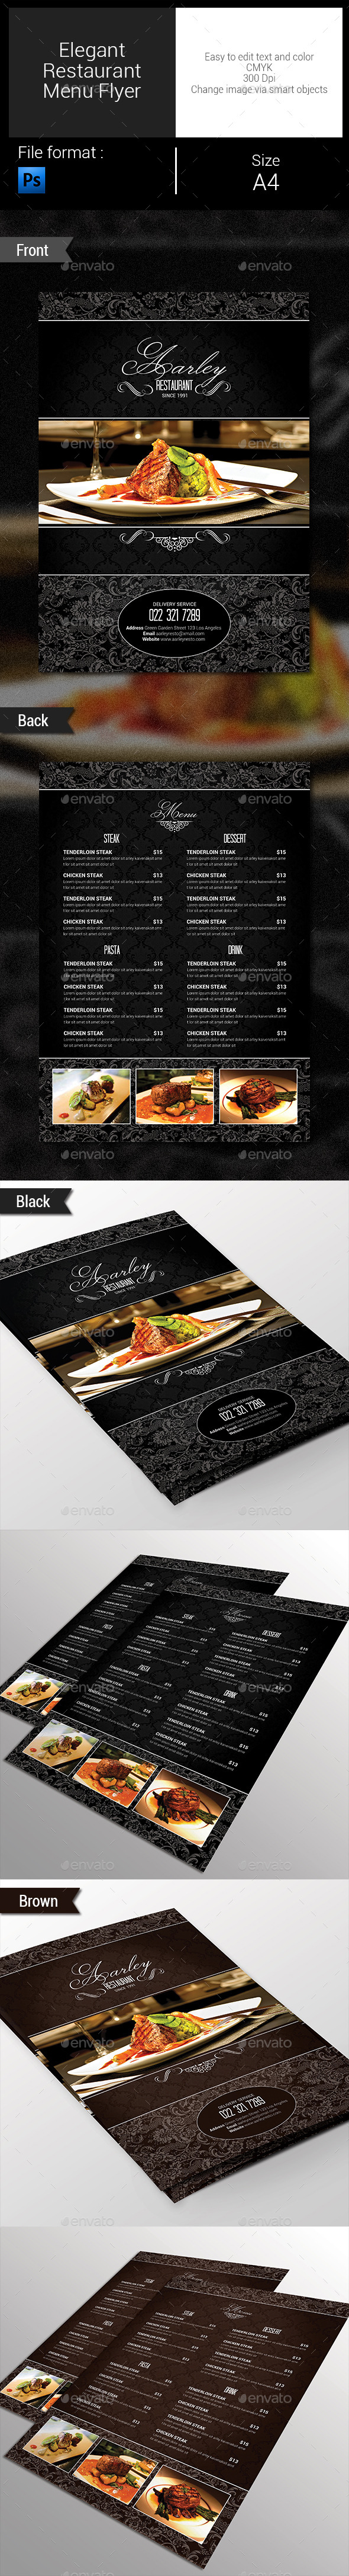 GraphicRiver Elegant Restaurant Menu Flyer 9671212